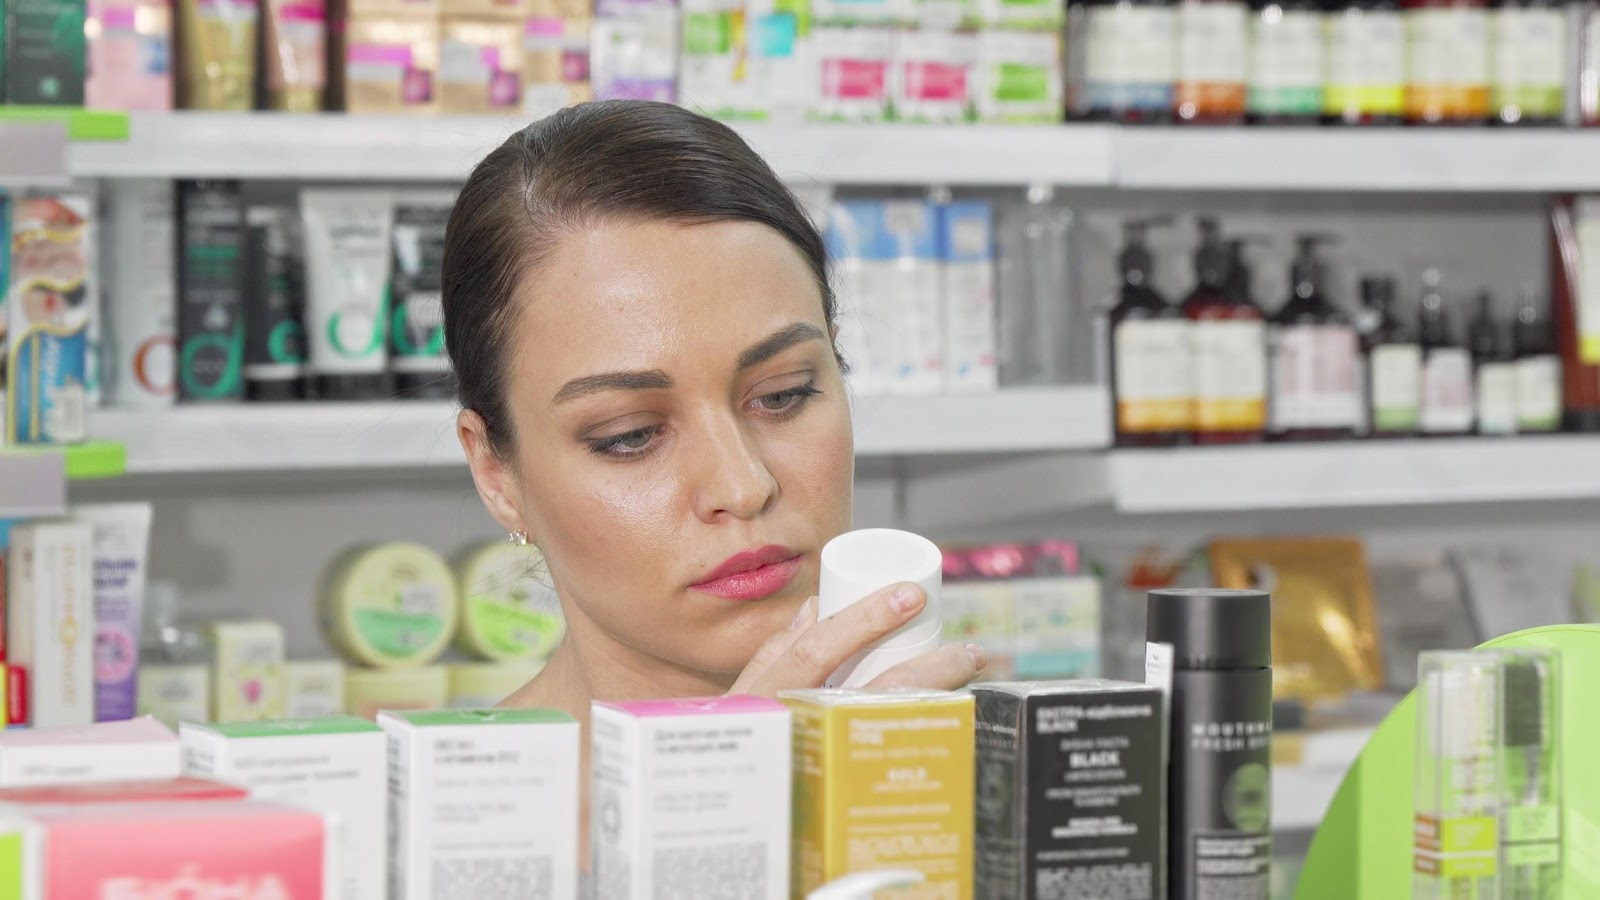 woman looking at acne-fighting products including ahas and bhas